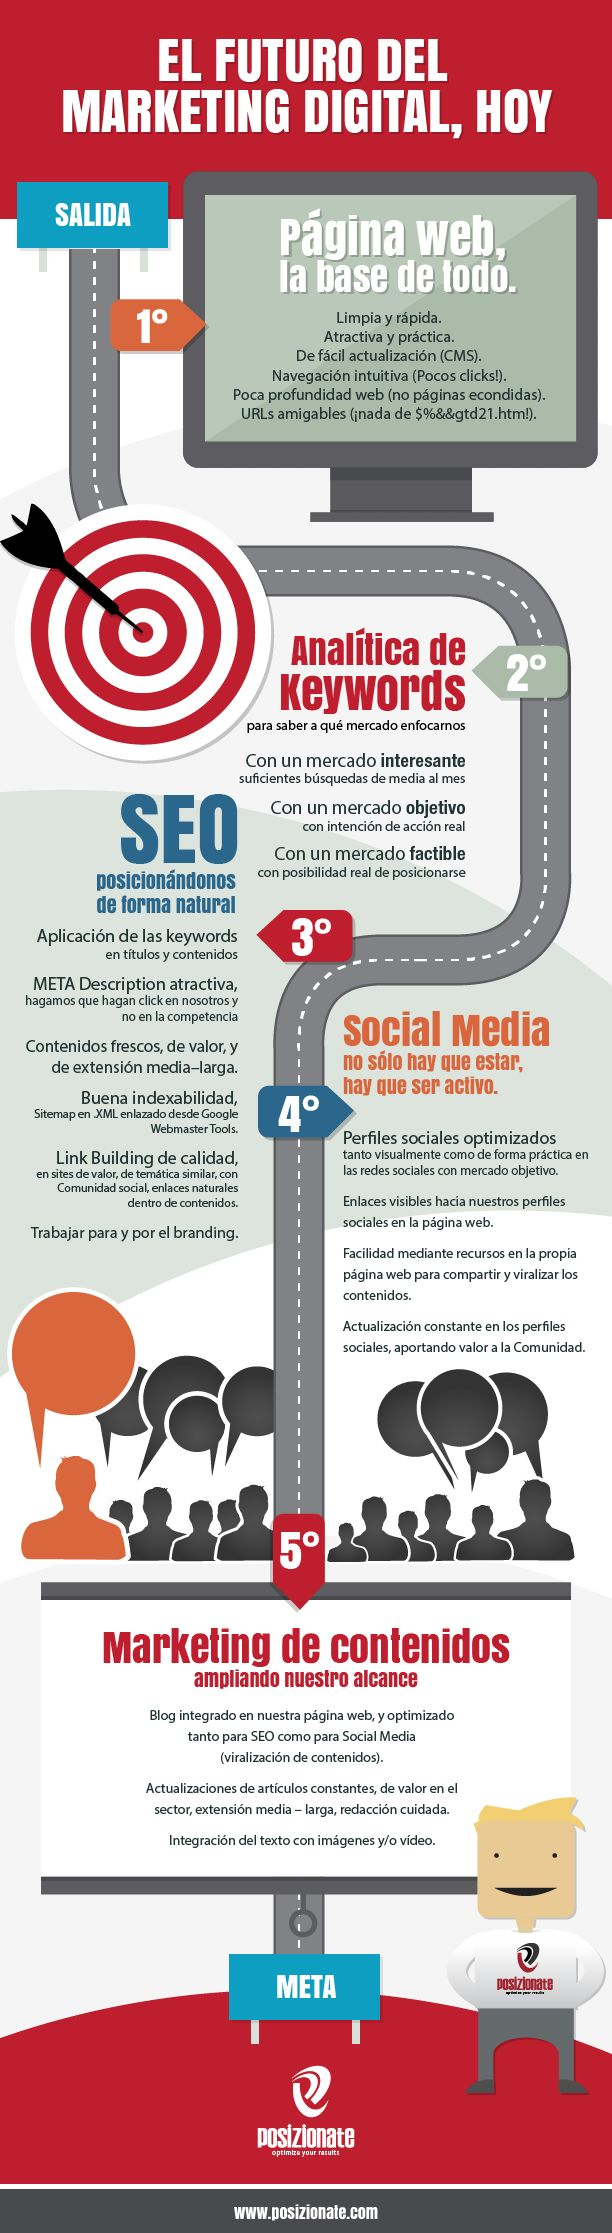 El futuro del #marketing digital, hoy #Infografia @Virginia Kraljevic Jiménez | Conecta Social Media